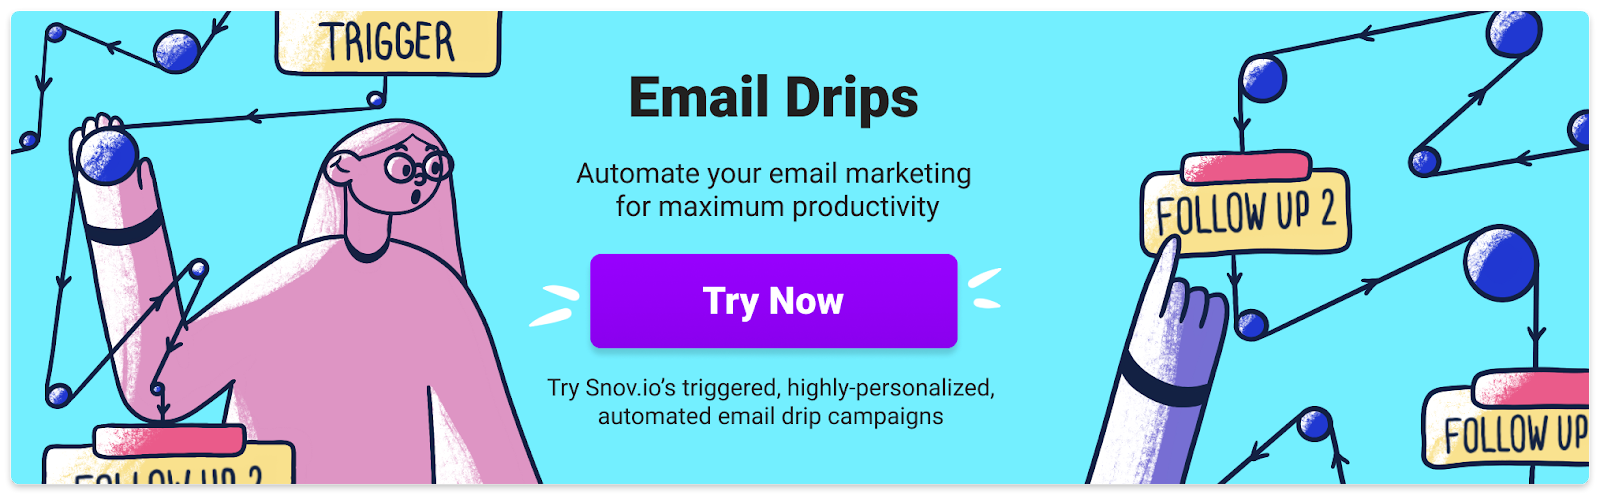 email drips